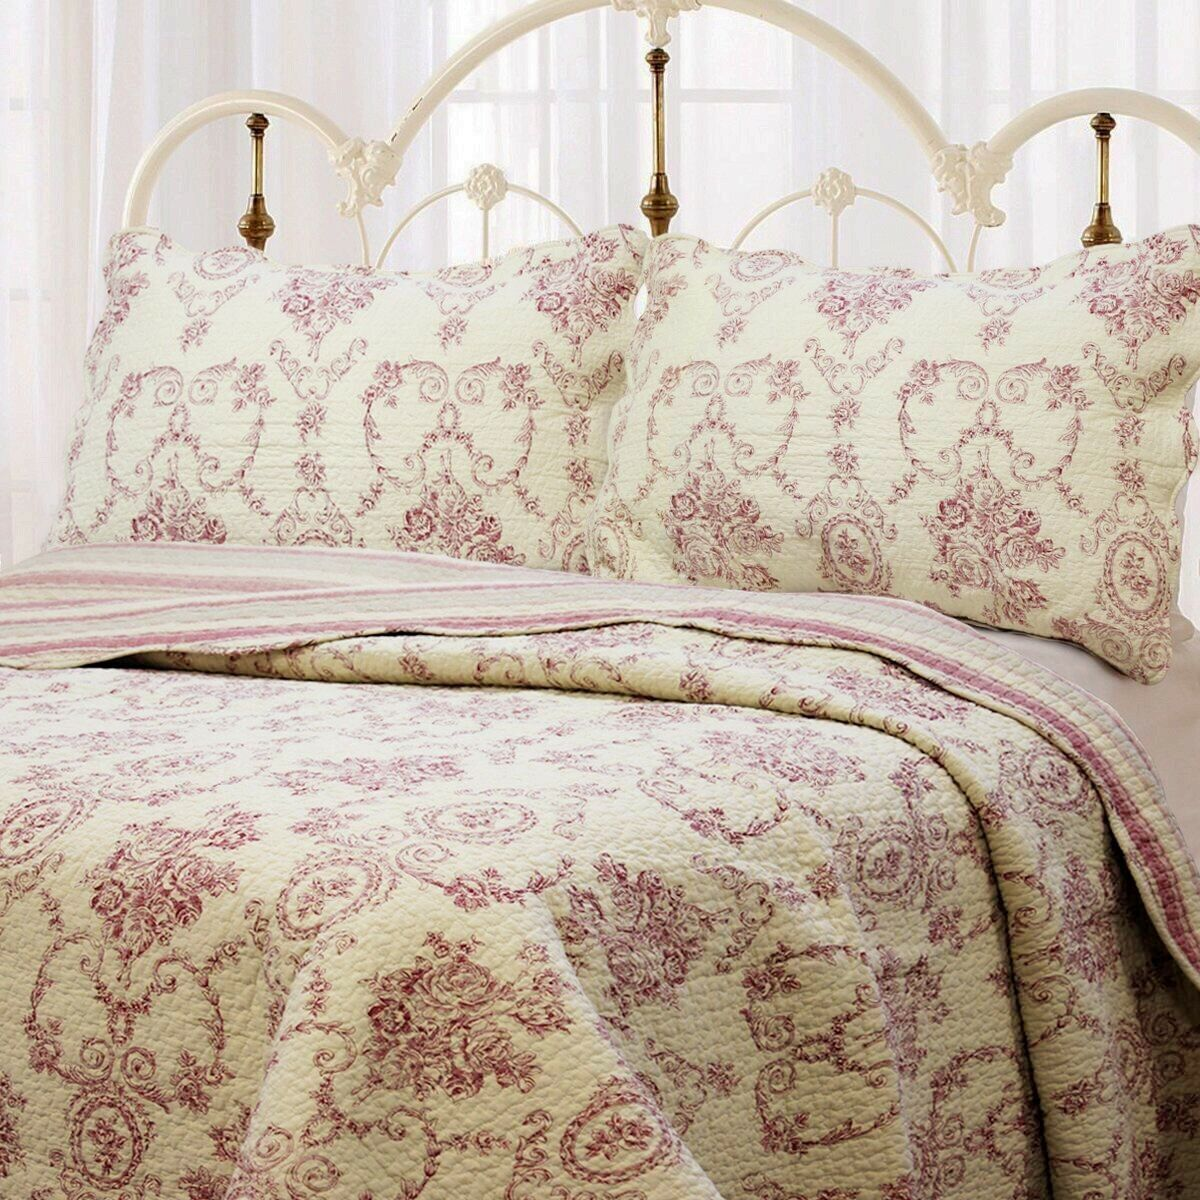 French Medallion Burgundy rot 100% Cotton Quilt Set, Bedspread, Coverlet